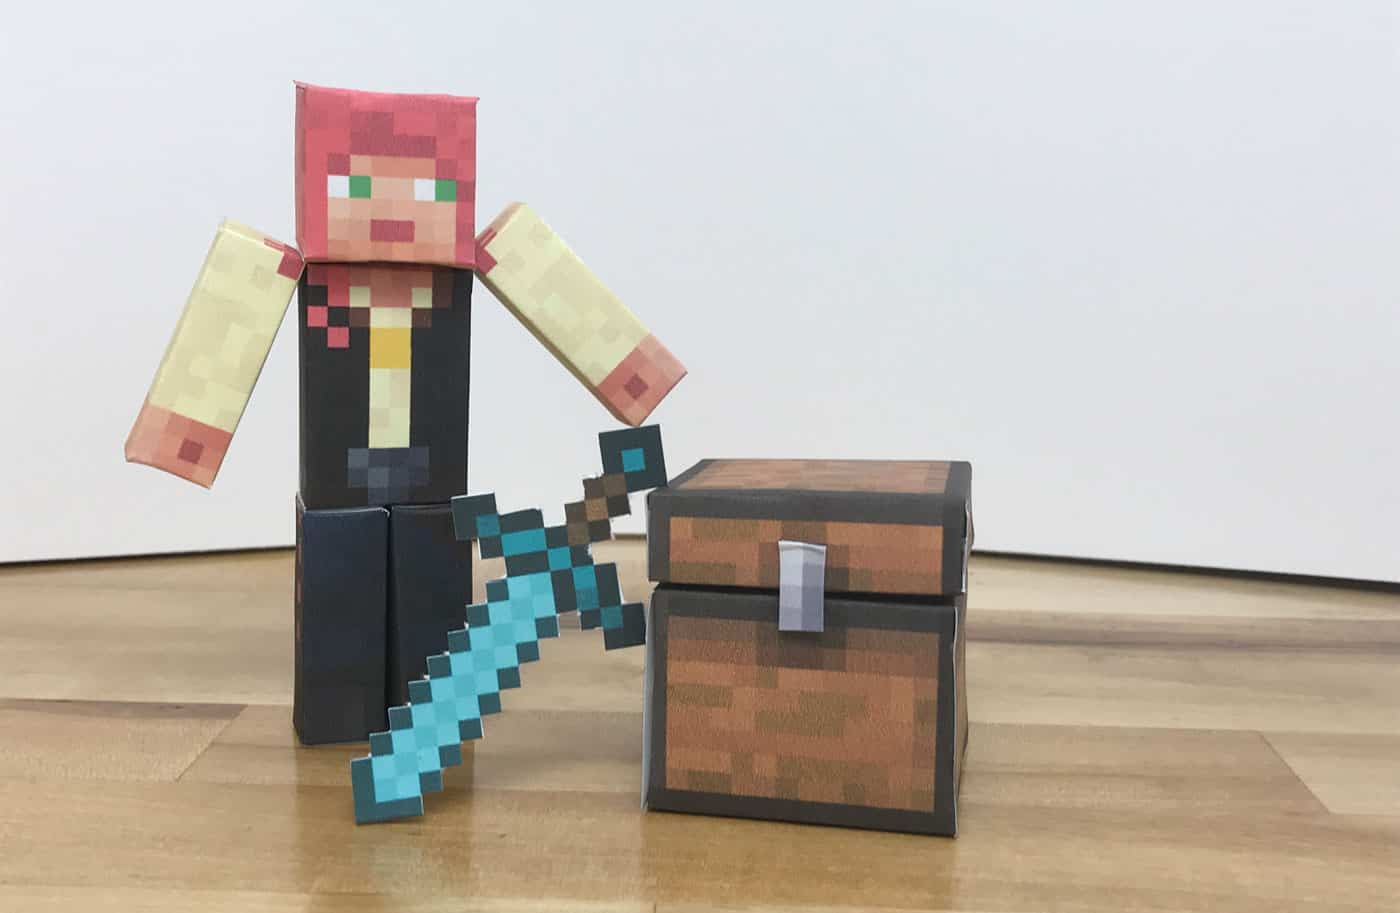 Minecraft player character printed on paper and made into a 3D toy.